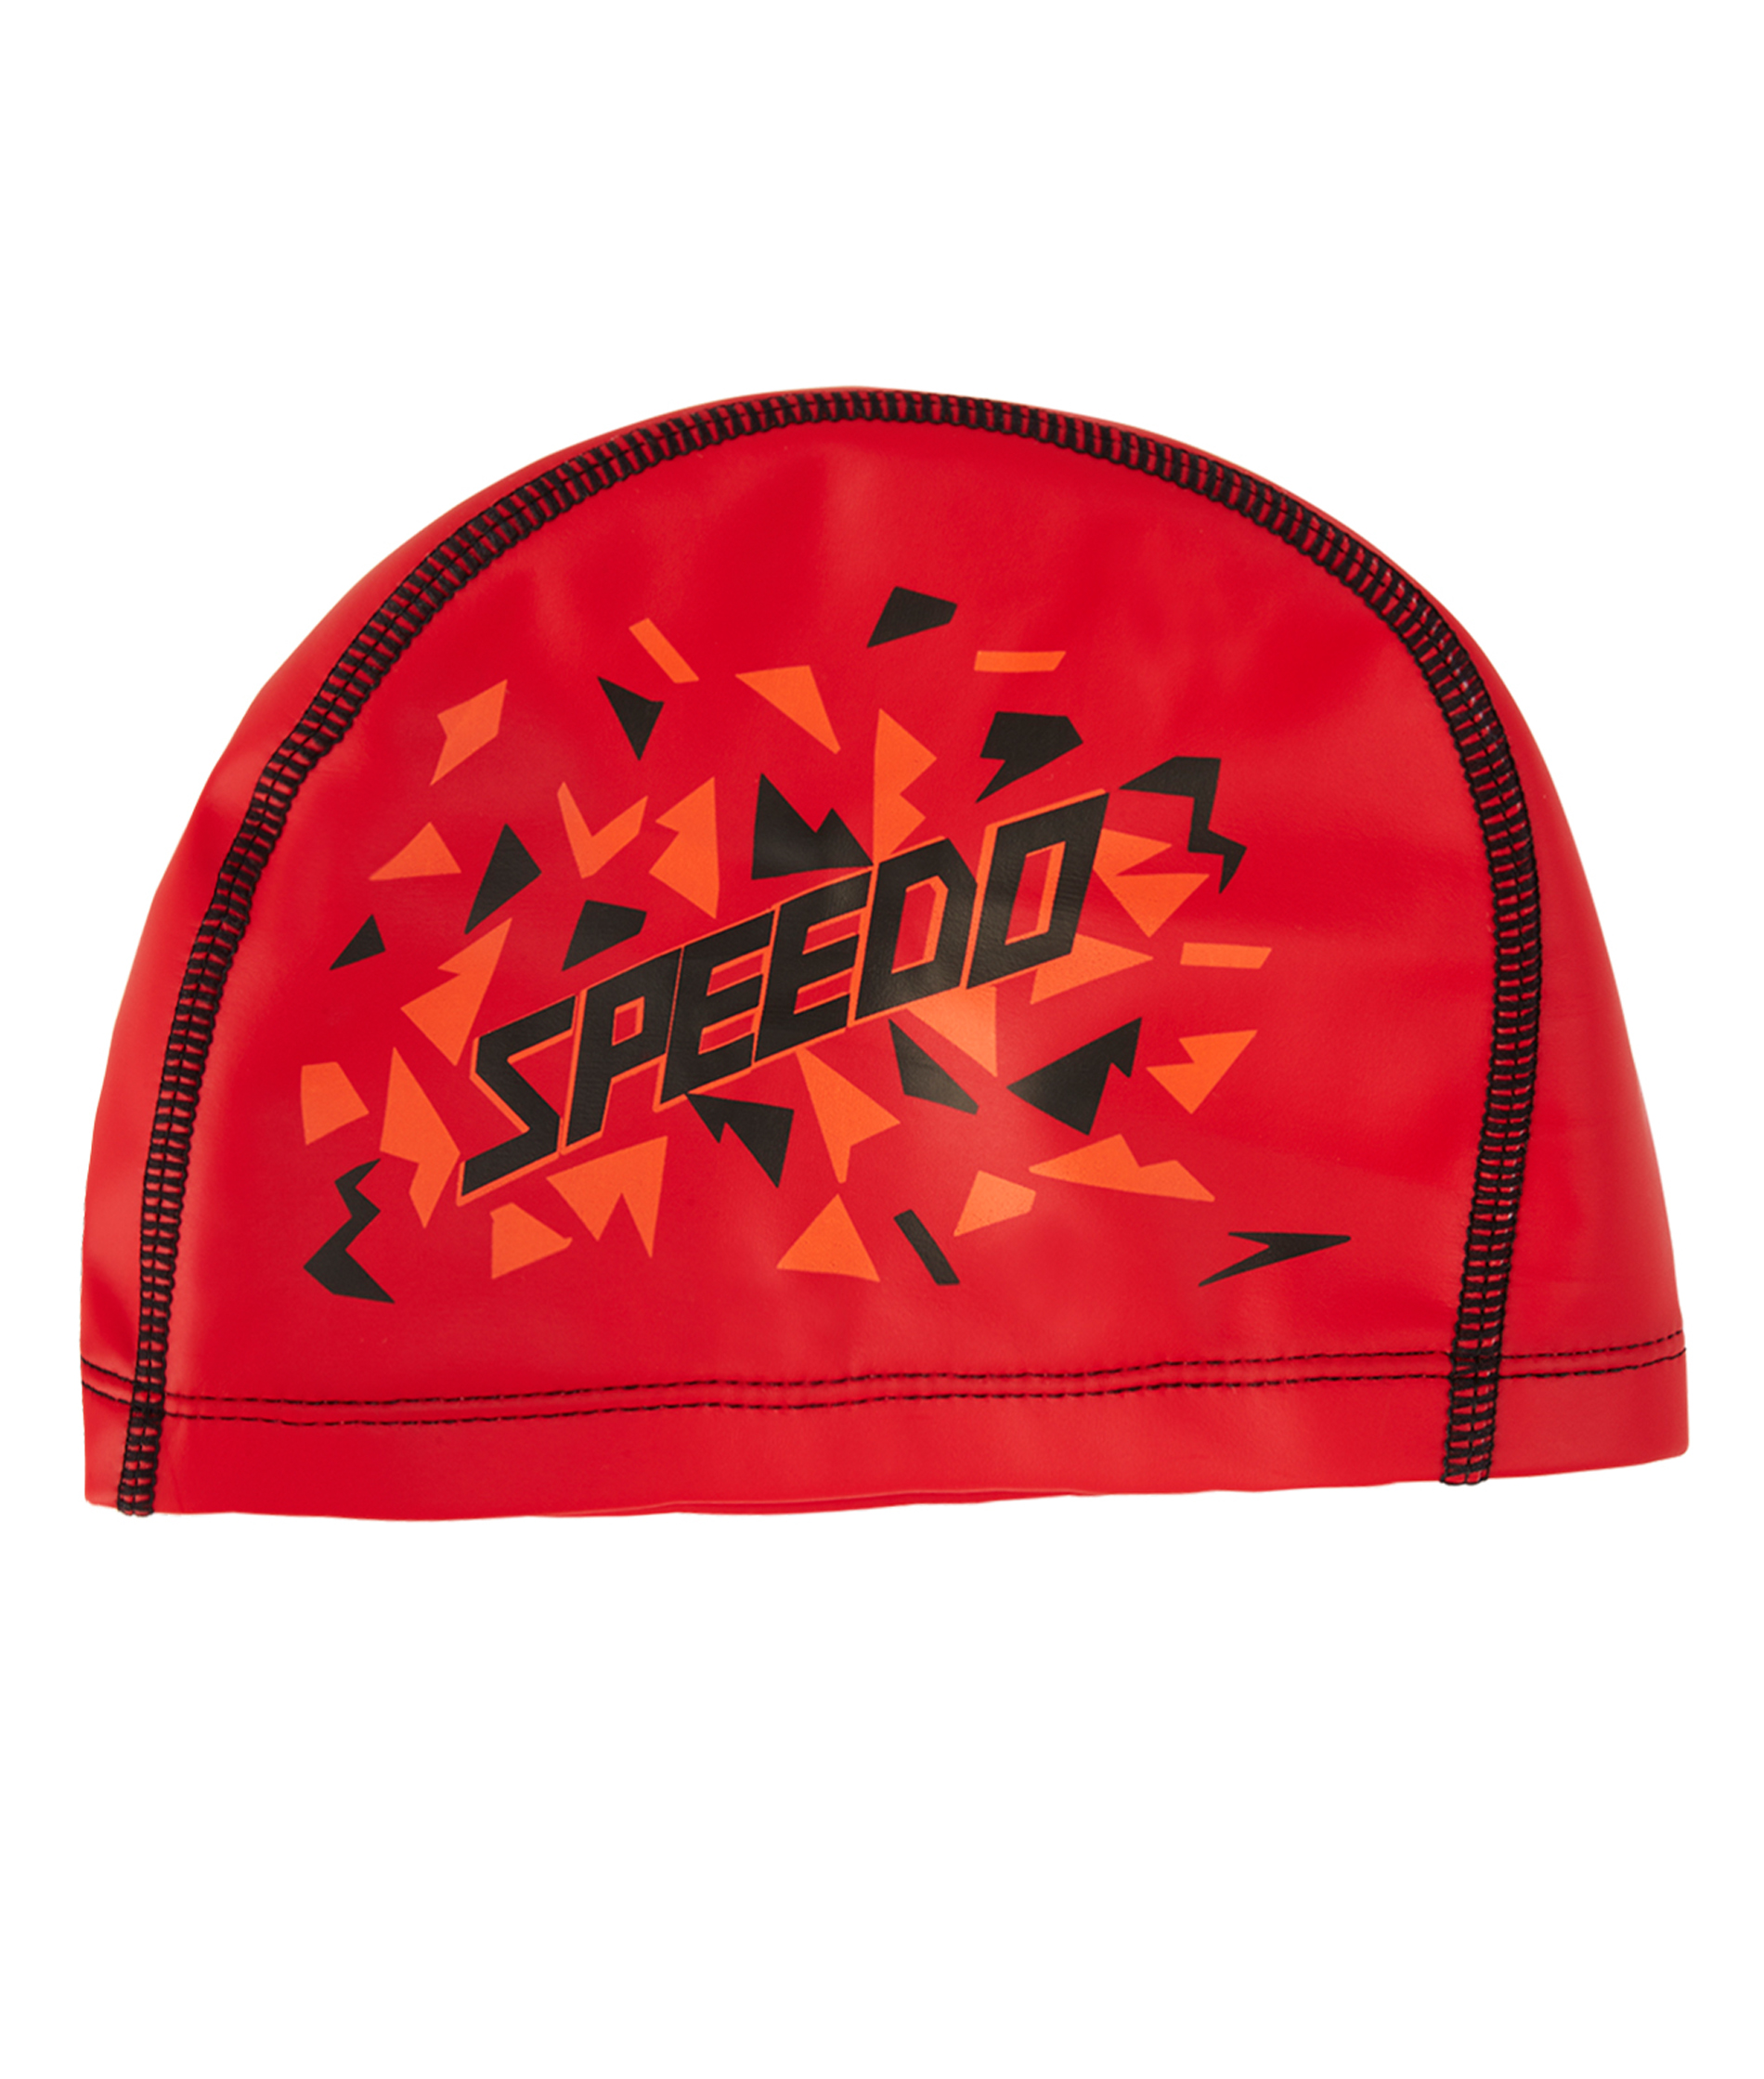 Speedo Printed Junior Pace Cap - Red/Orange